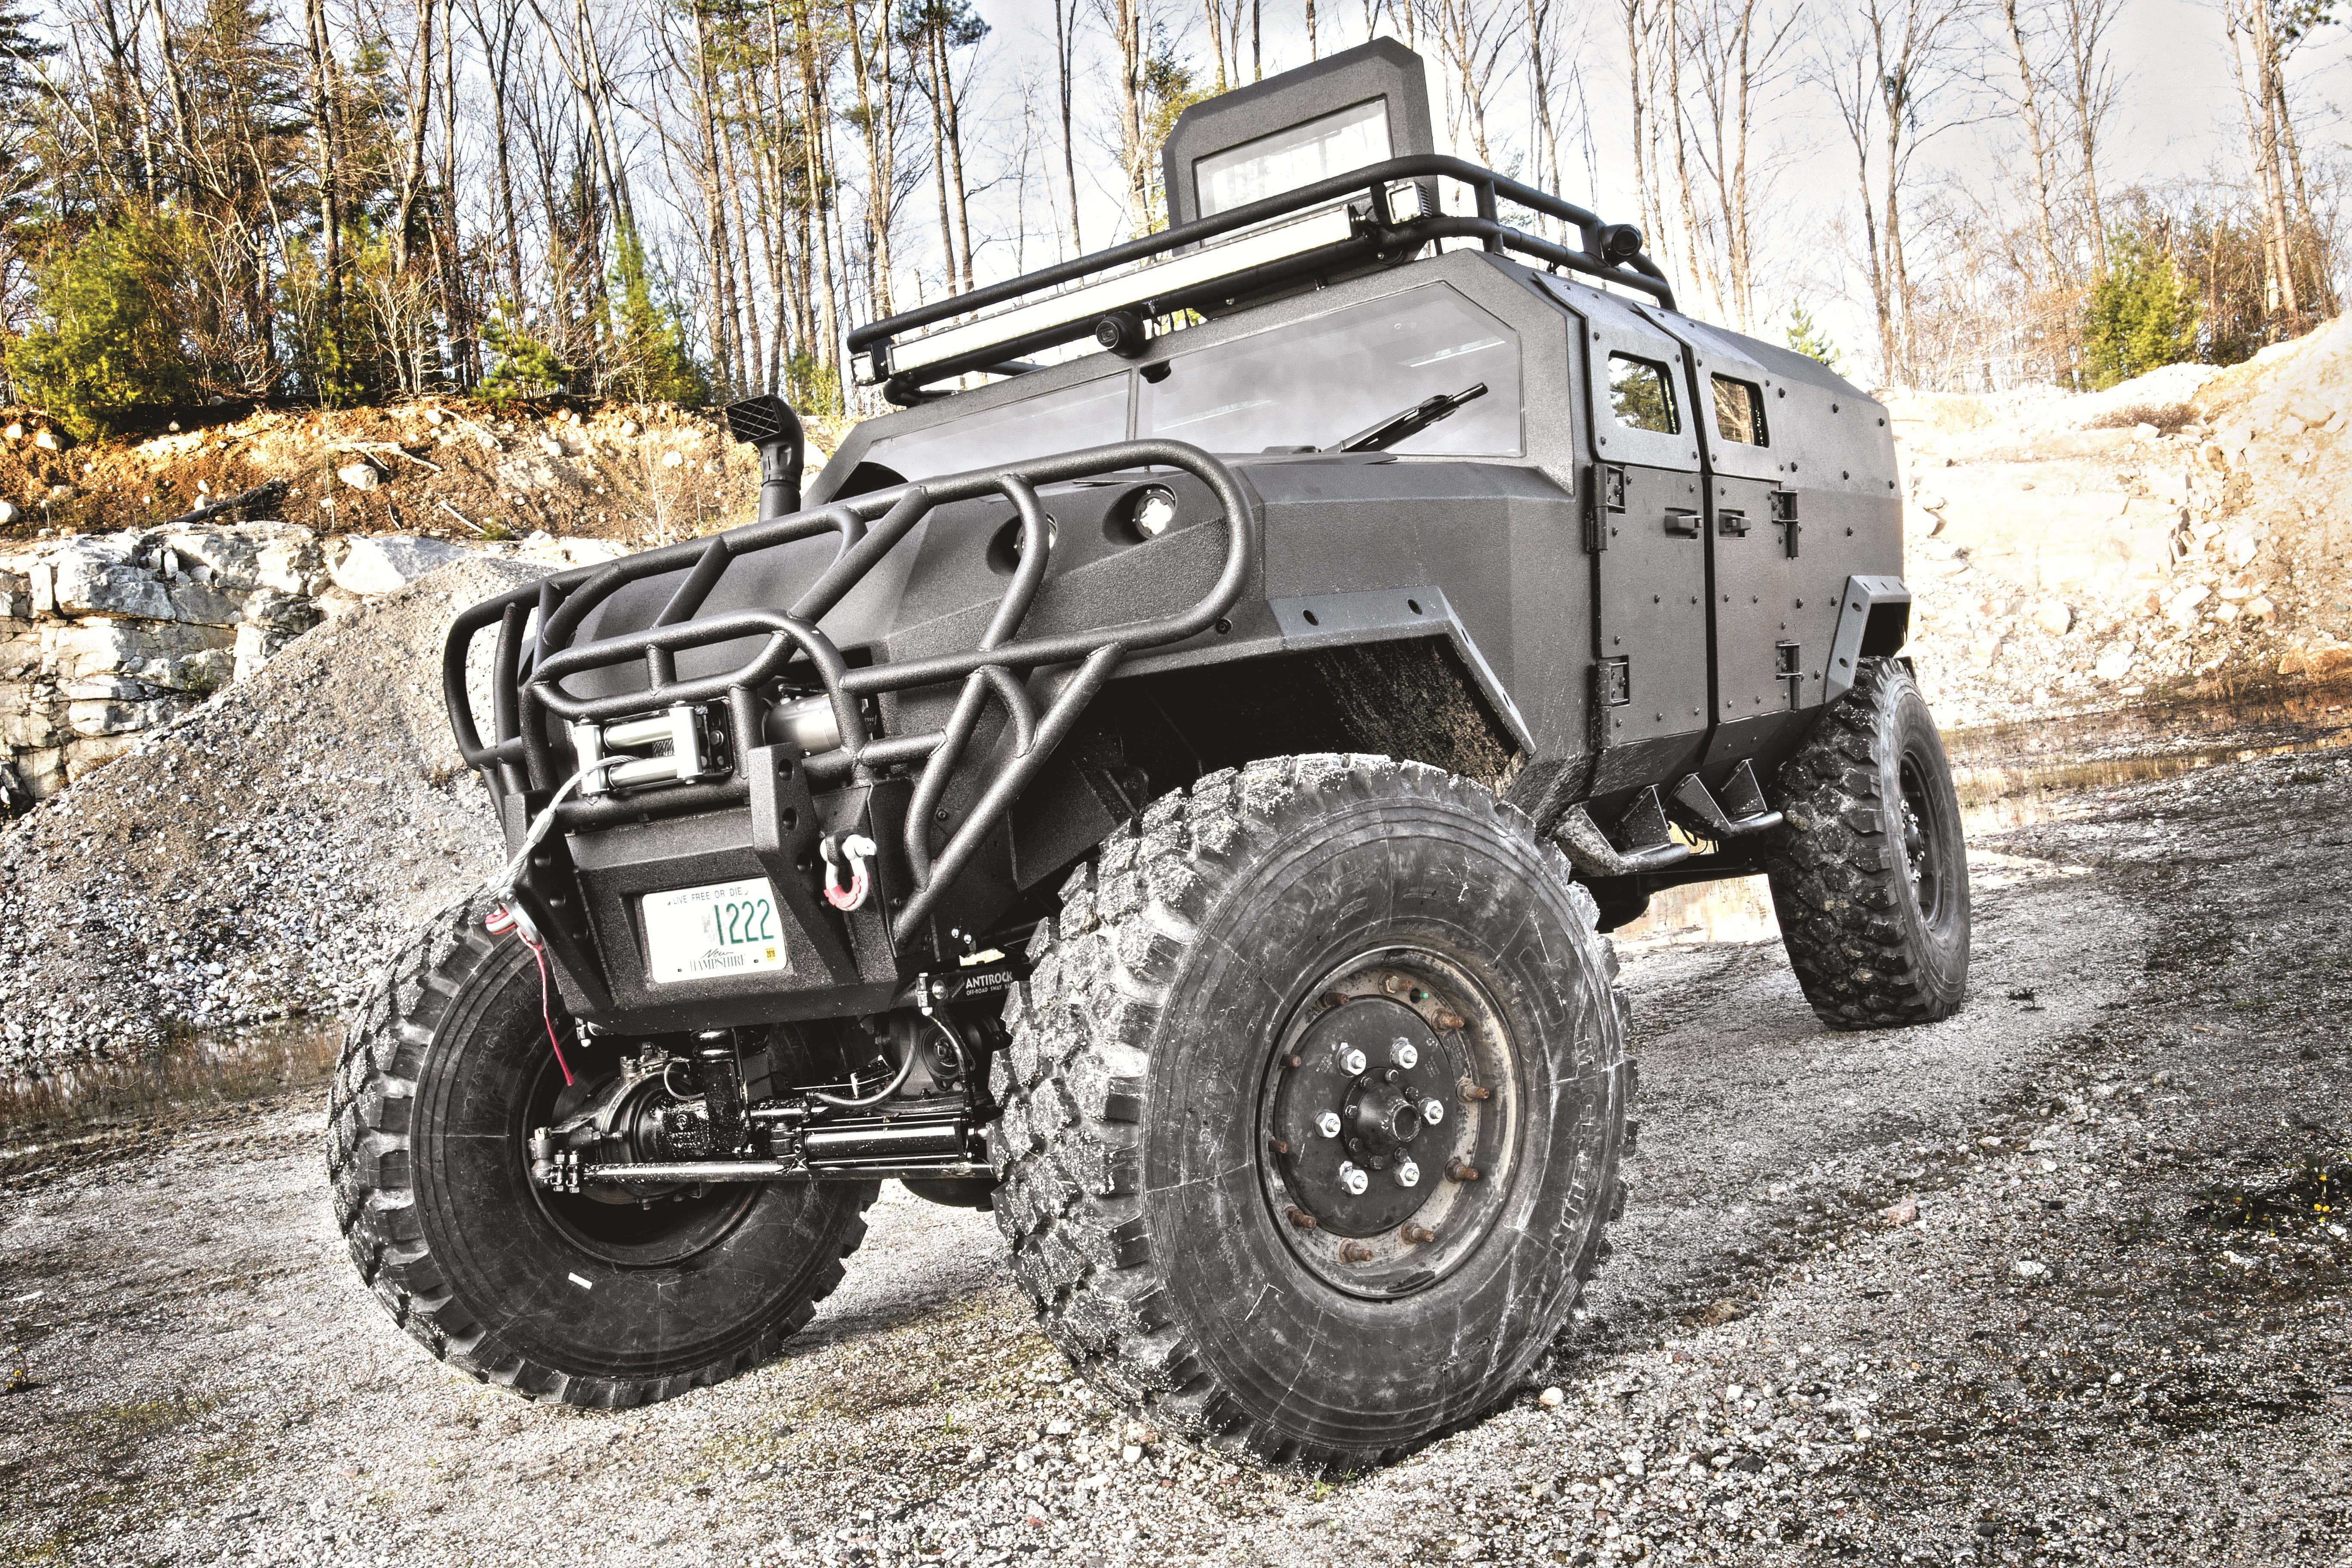 The Lucky Gunner Garage PSV is a formidable and capable vehicle that's ideal for when the SHTF.